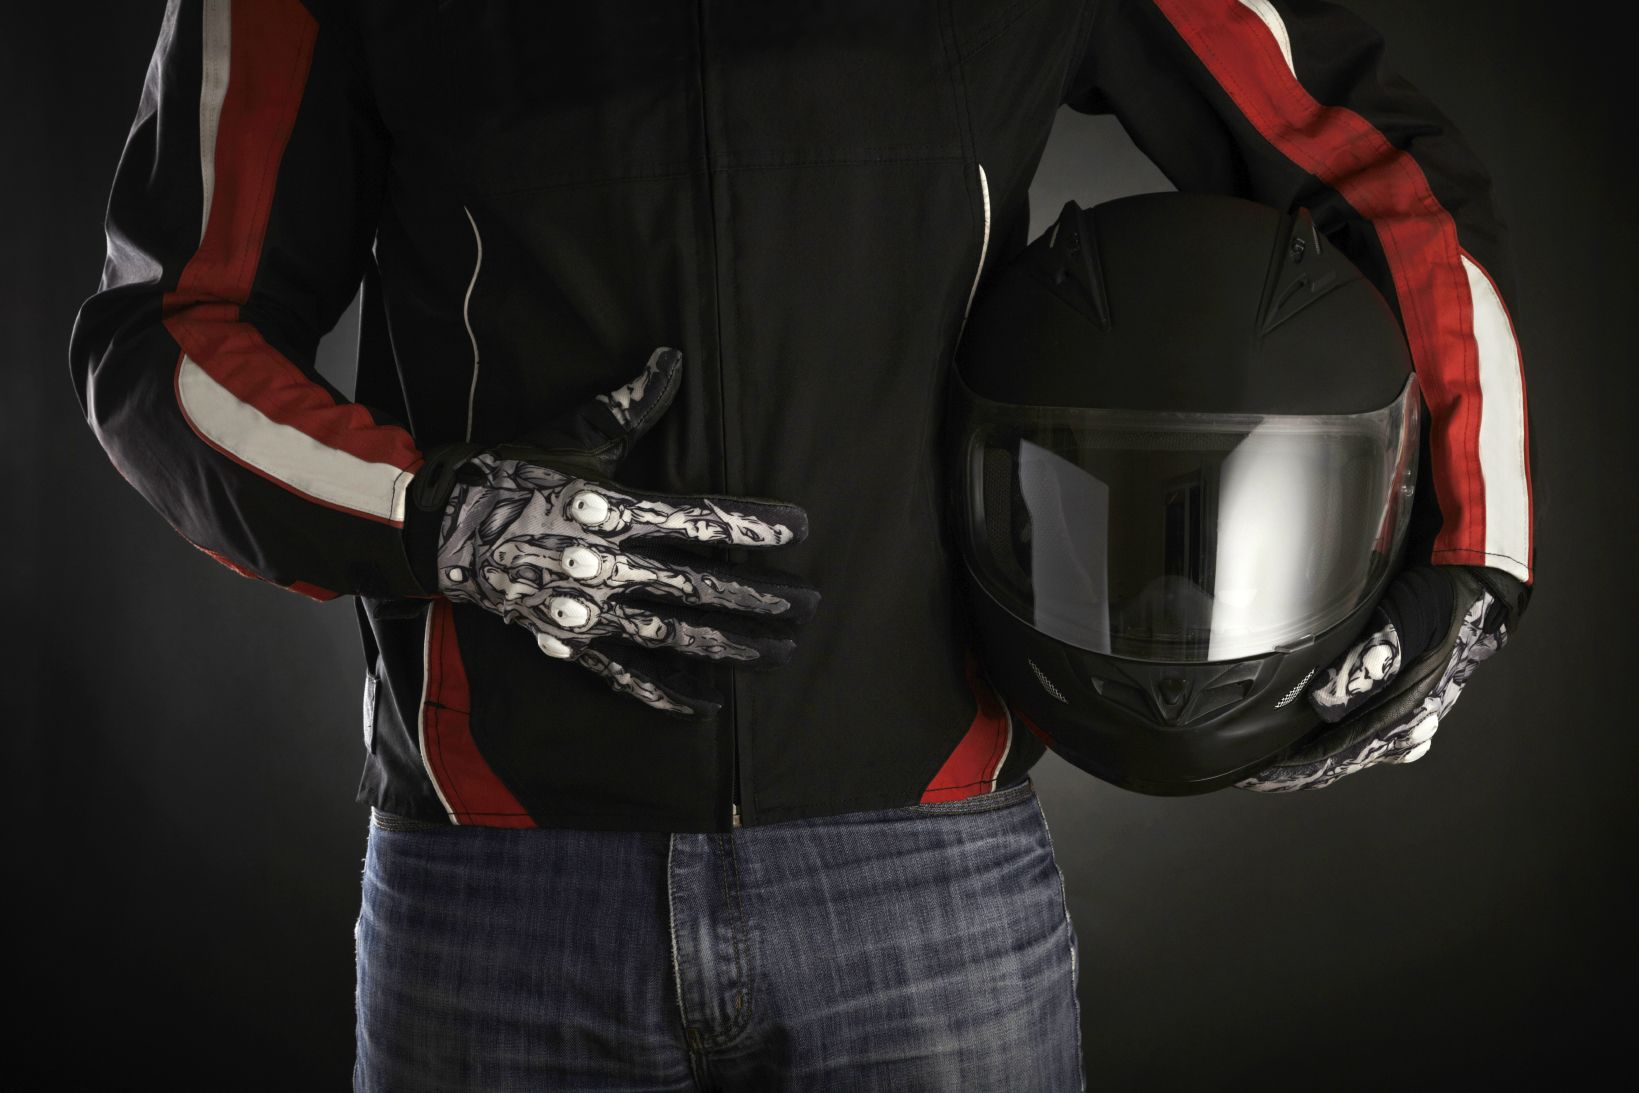 Motorcycle rider with a helmet